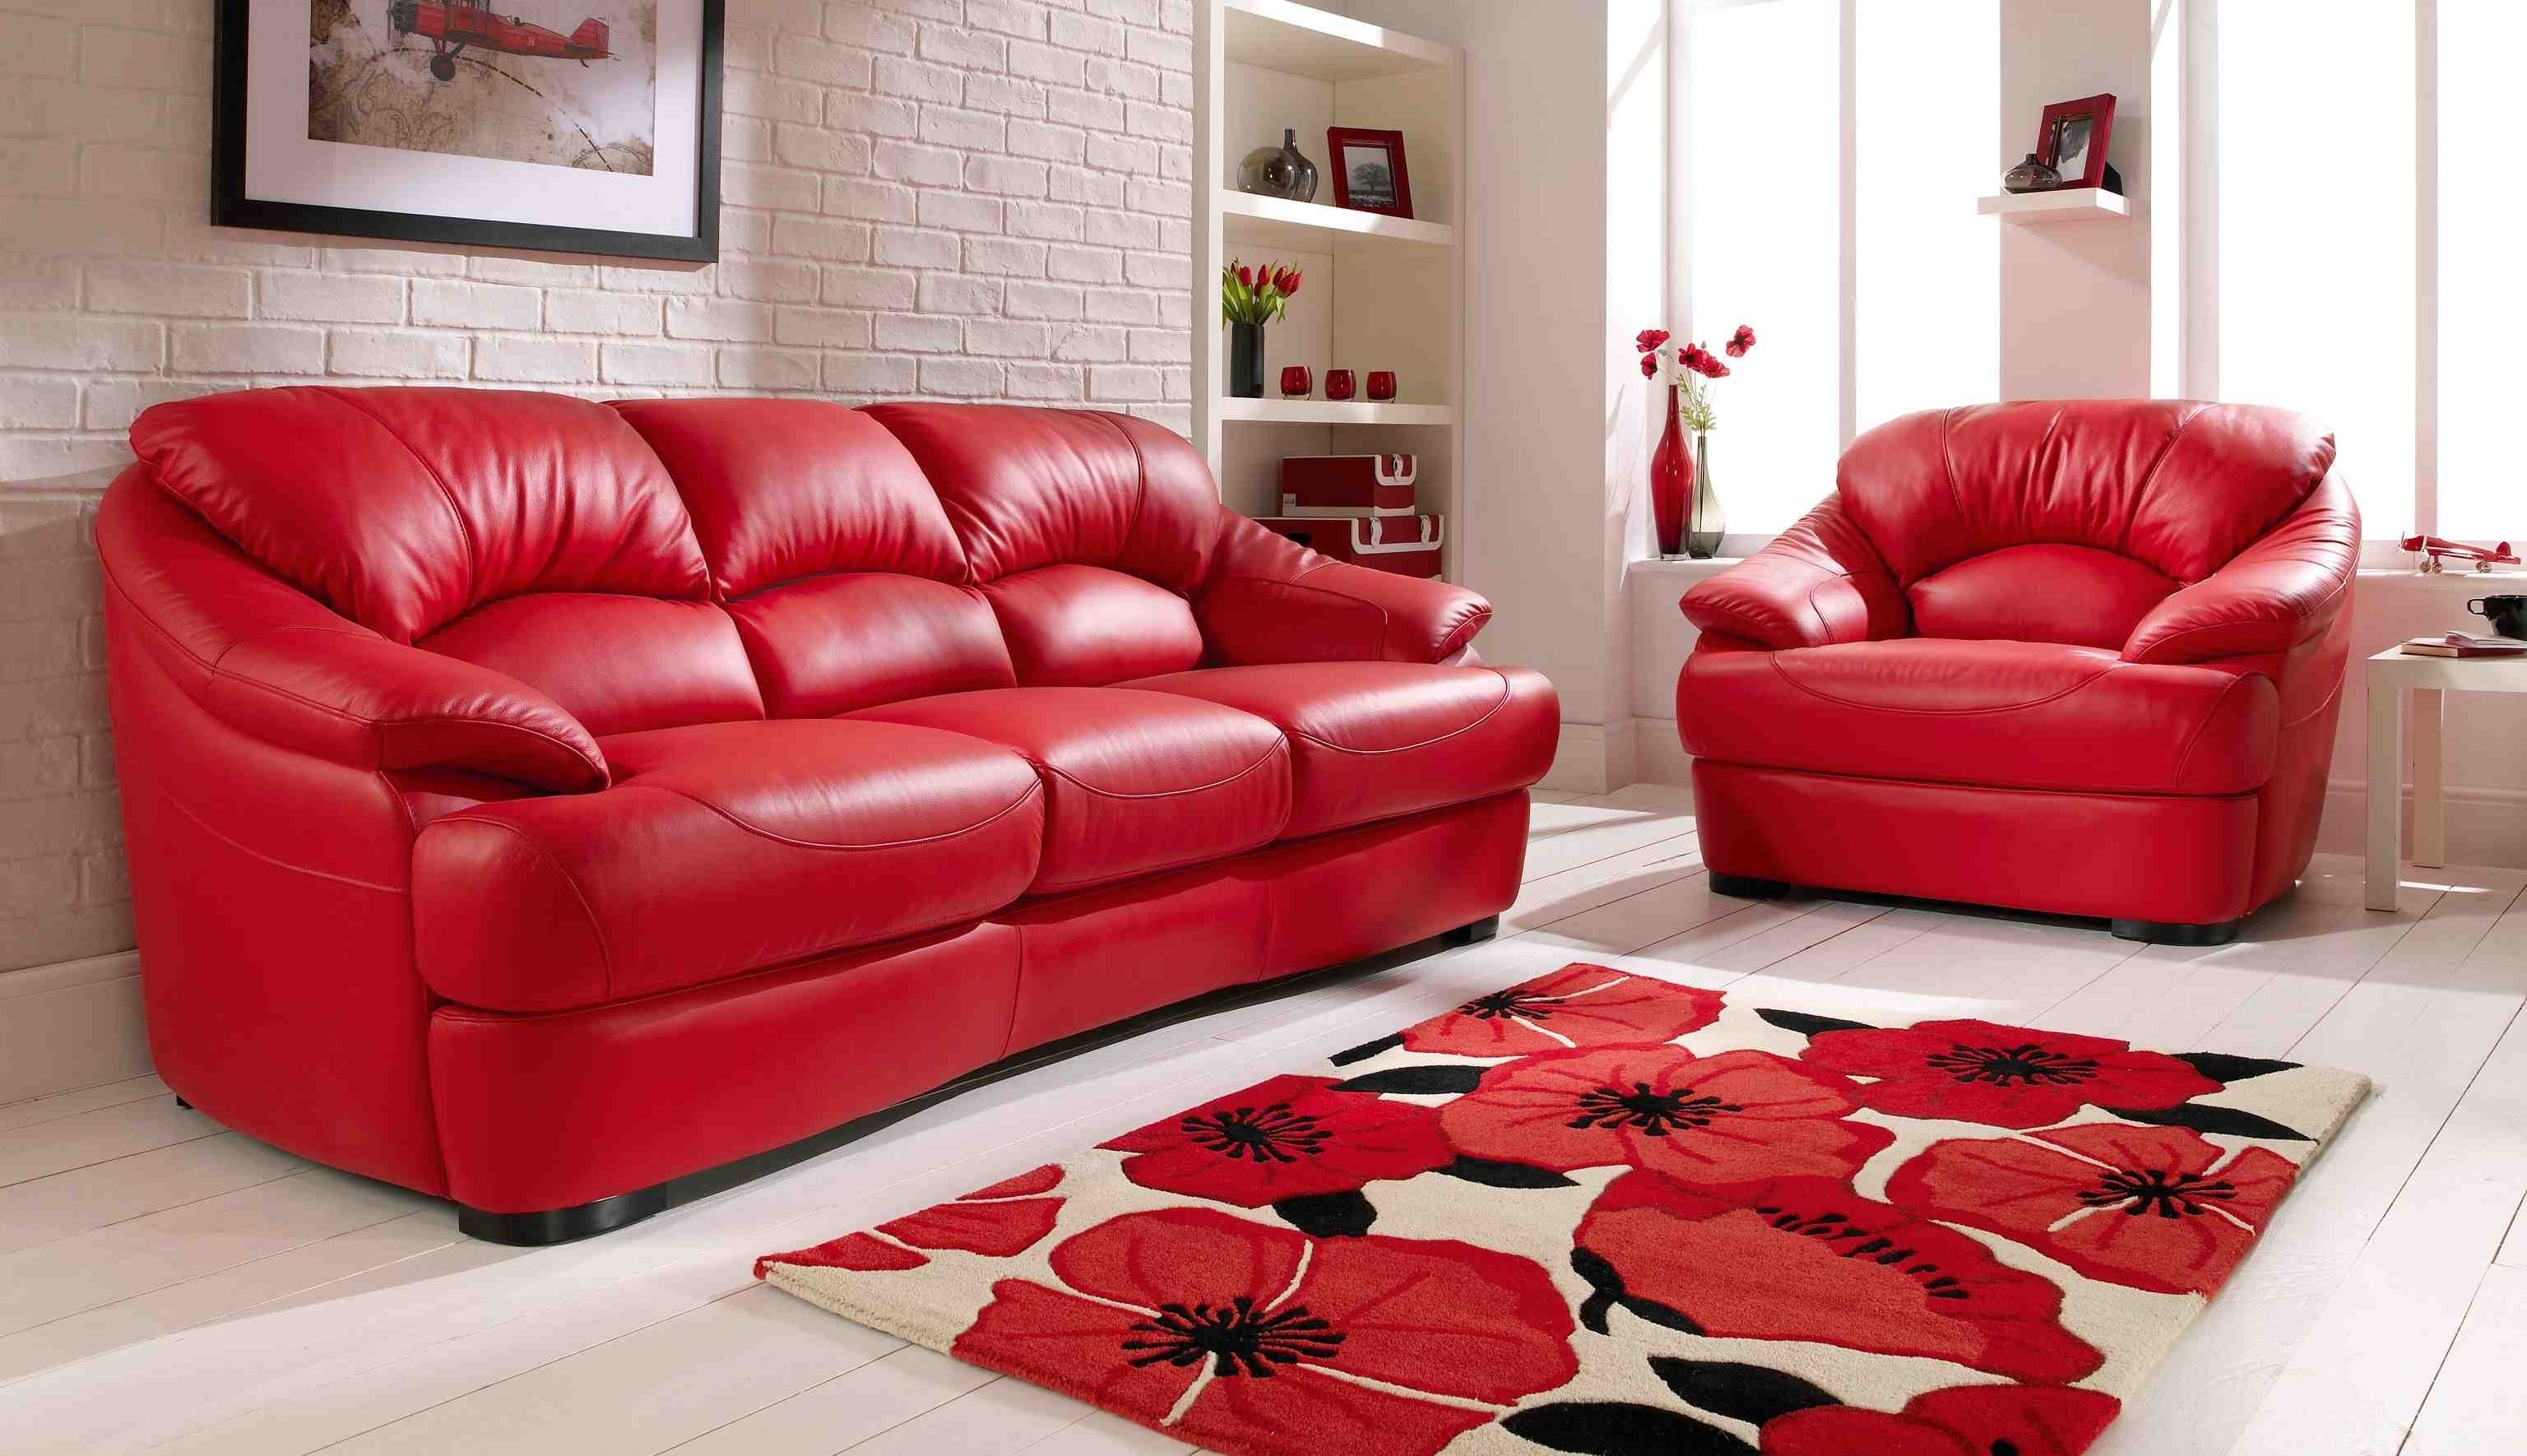 Red Leather Couches Pertaining To Current Red Leather Sofa Living Room Ideas Home Design Ideas Pertaining To (View 6 of 15)